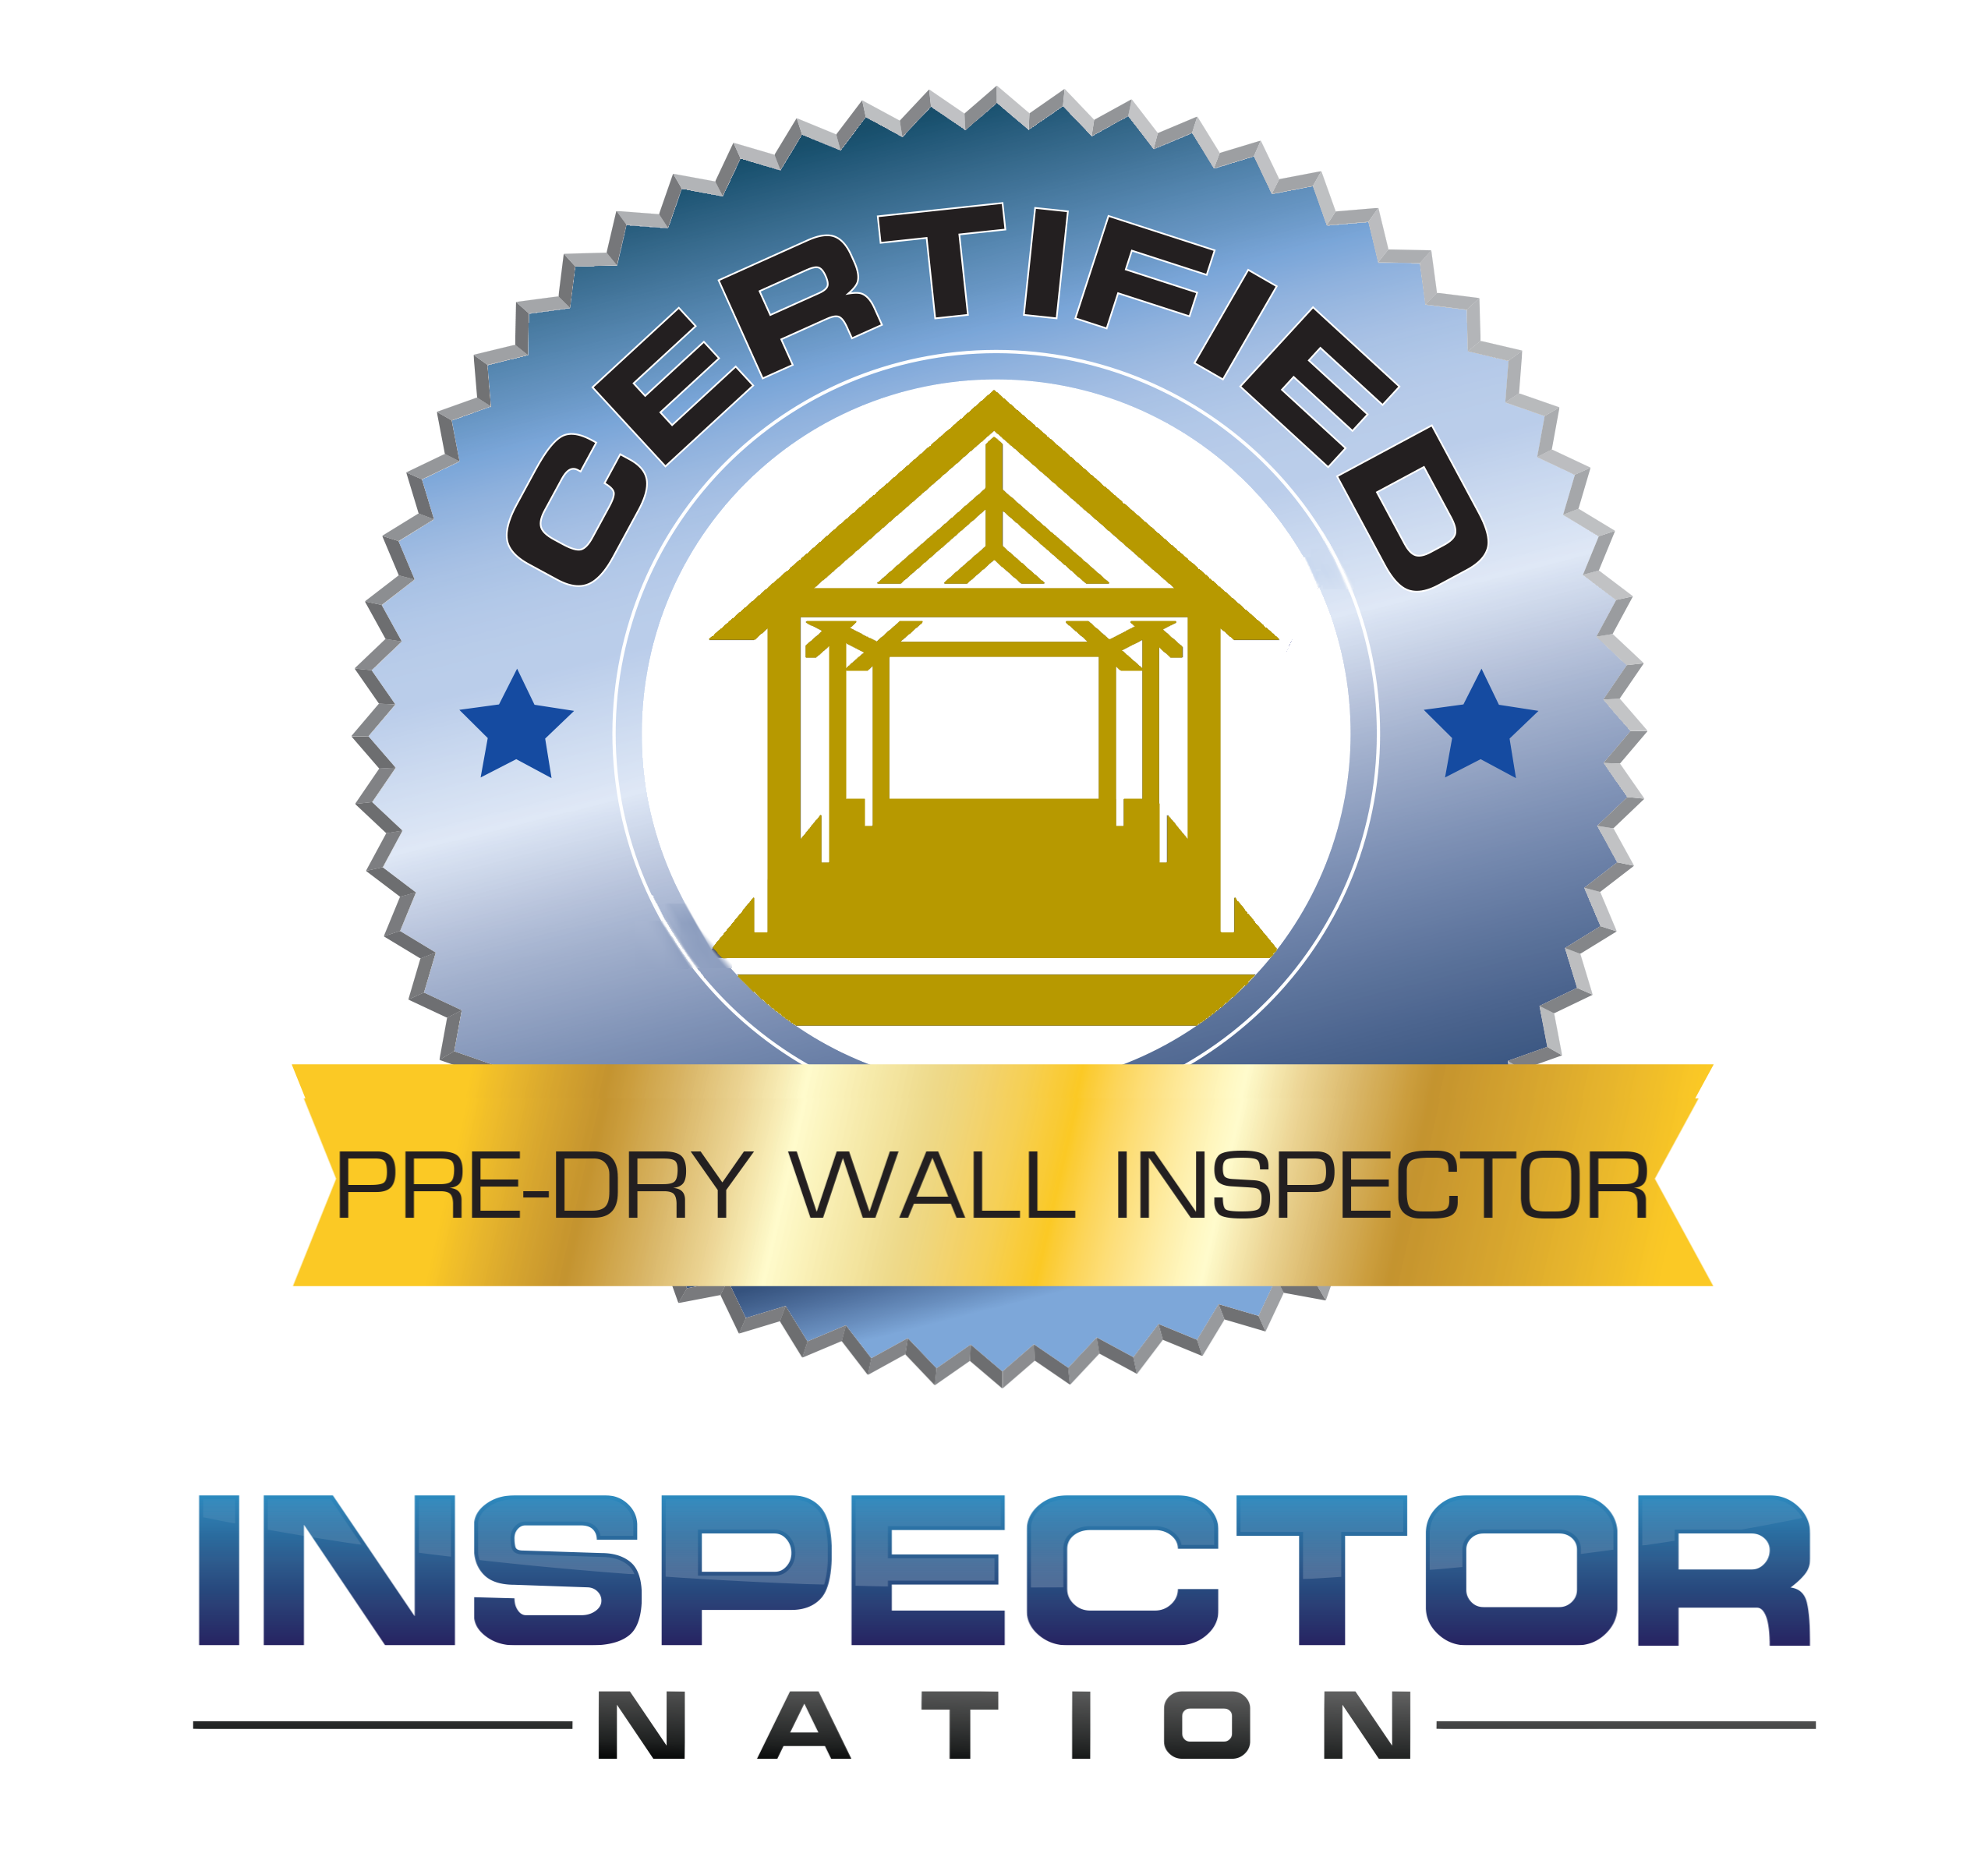 pre-drywall inspector dry-wall  inspector nation certified home inspector badge emblem icon